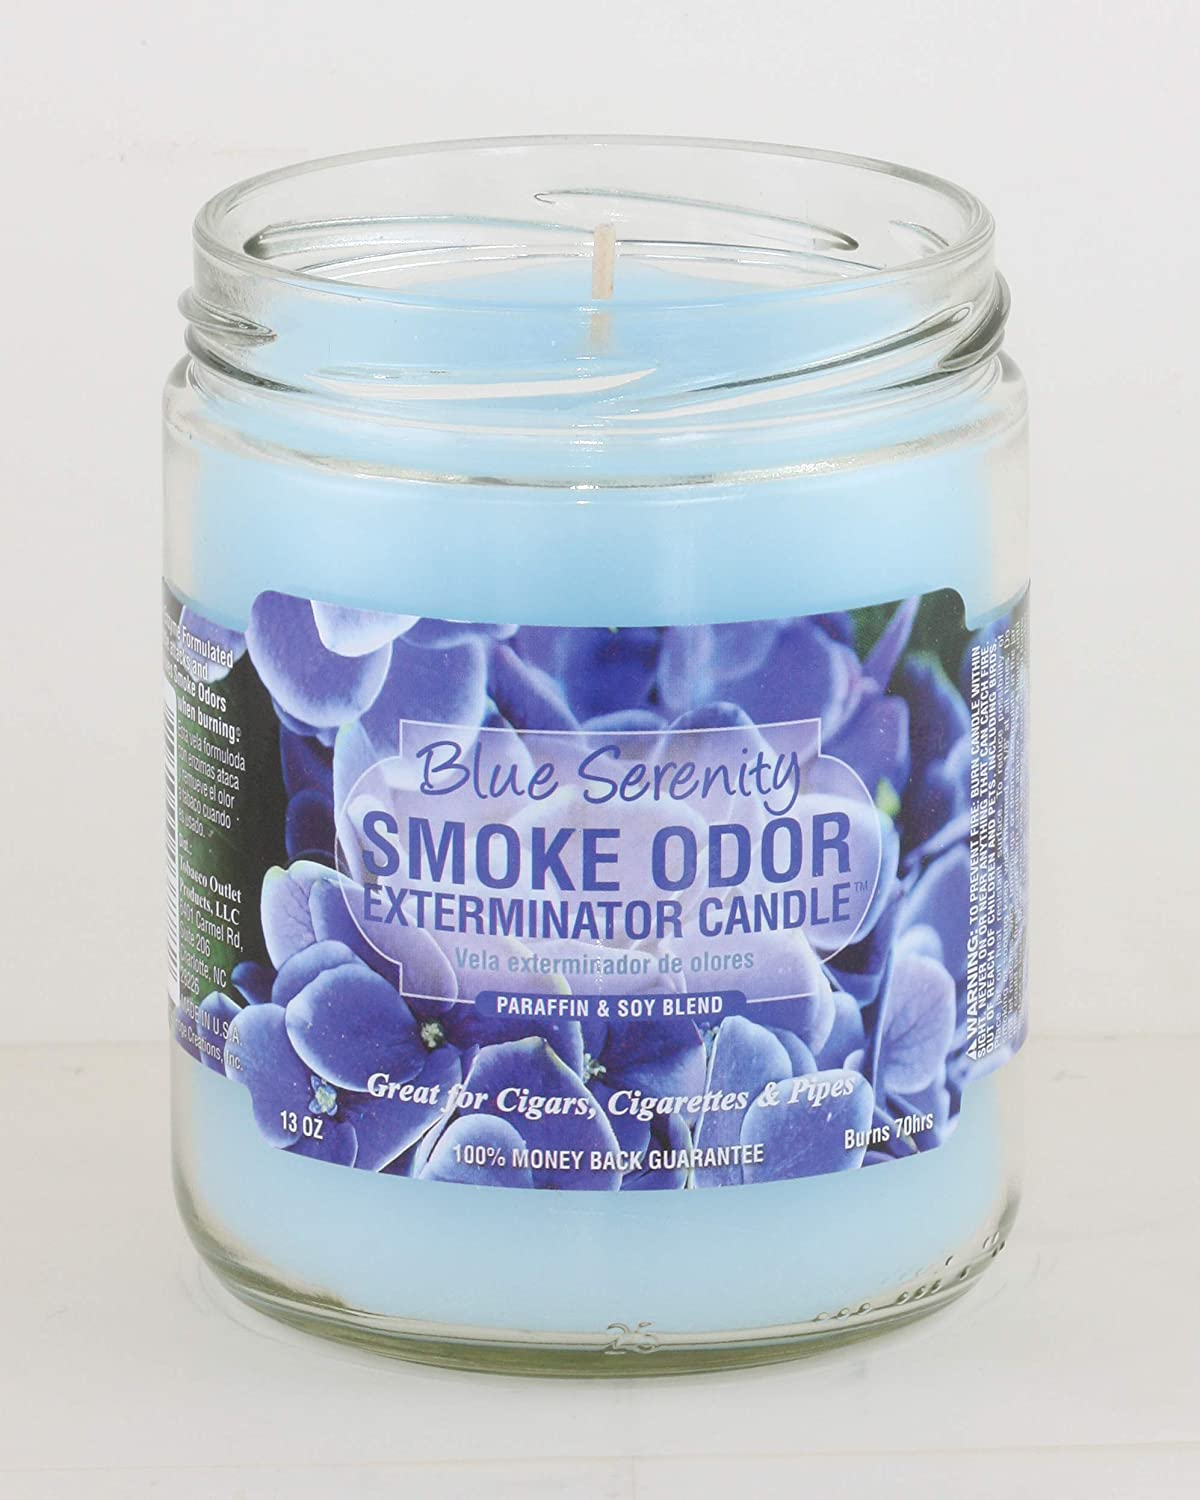 Smoke Odor Exterminator 13oz Jar Candles (Blue Serenity, 2)